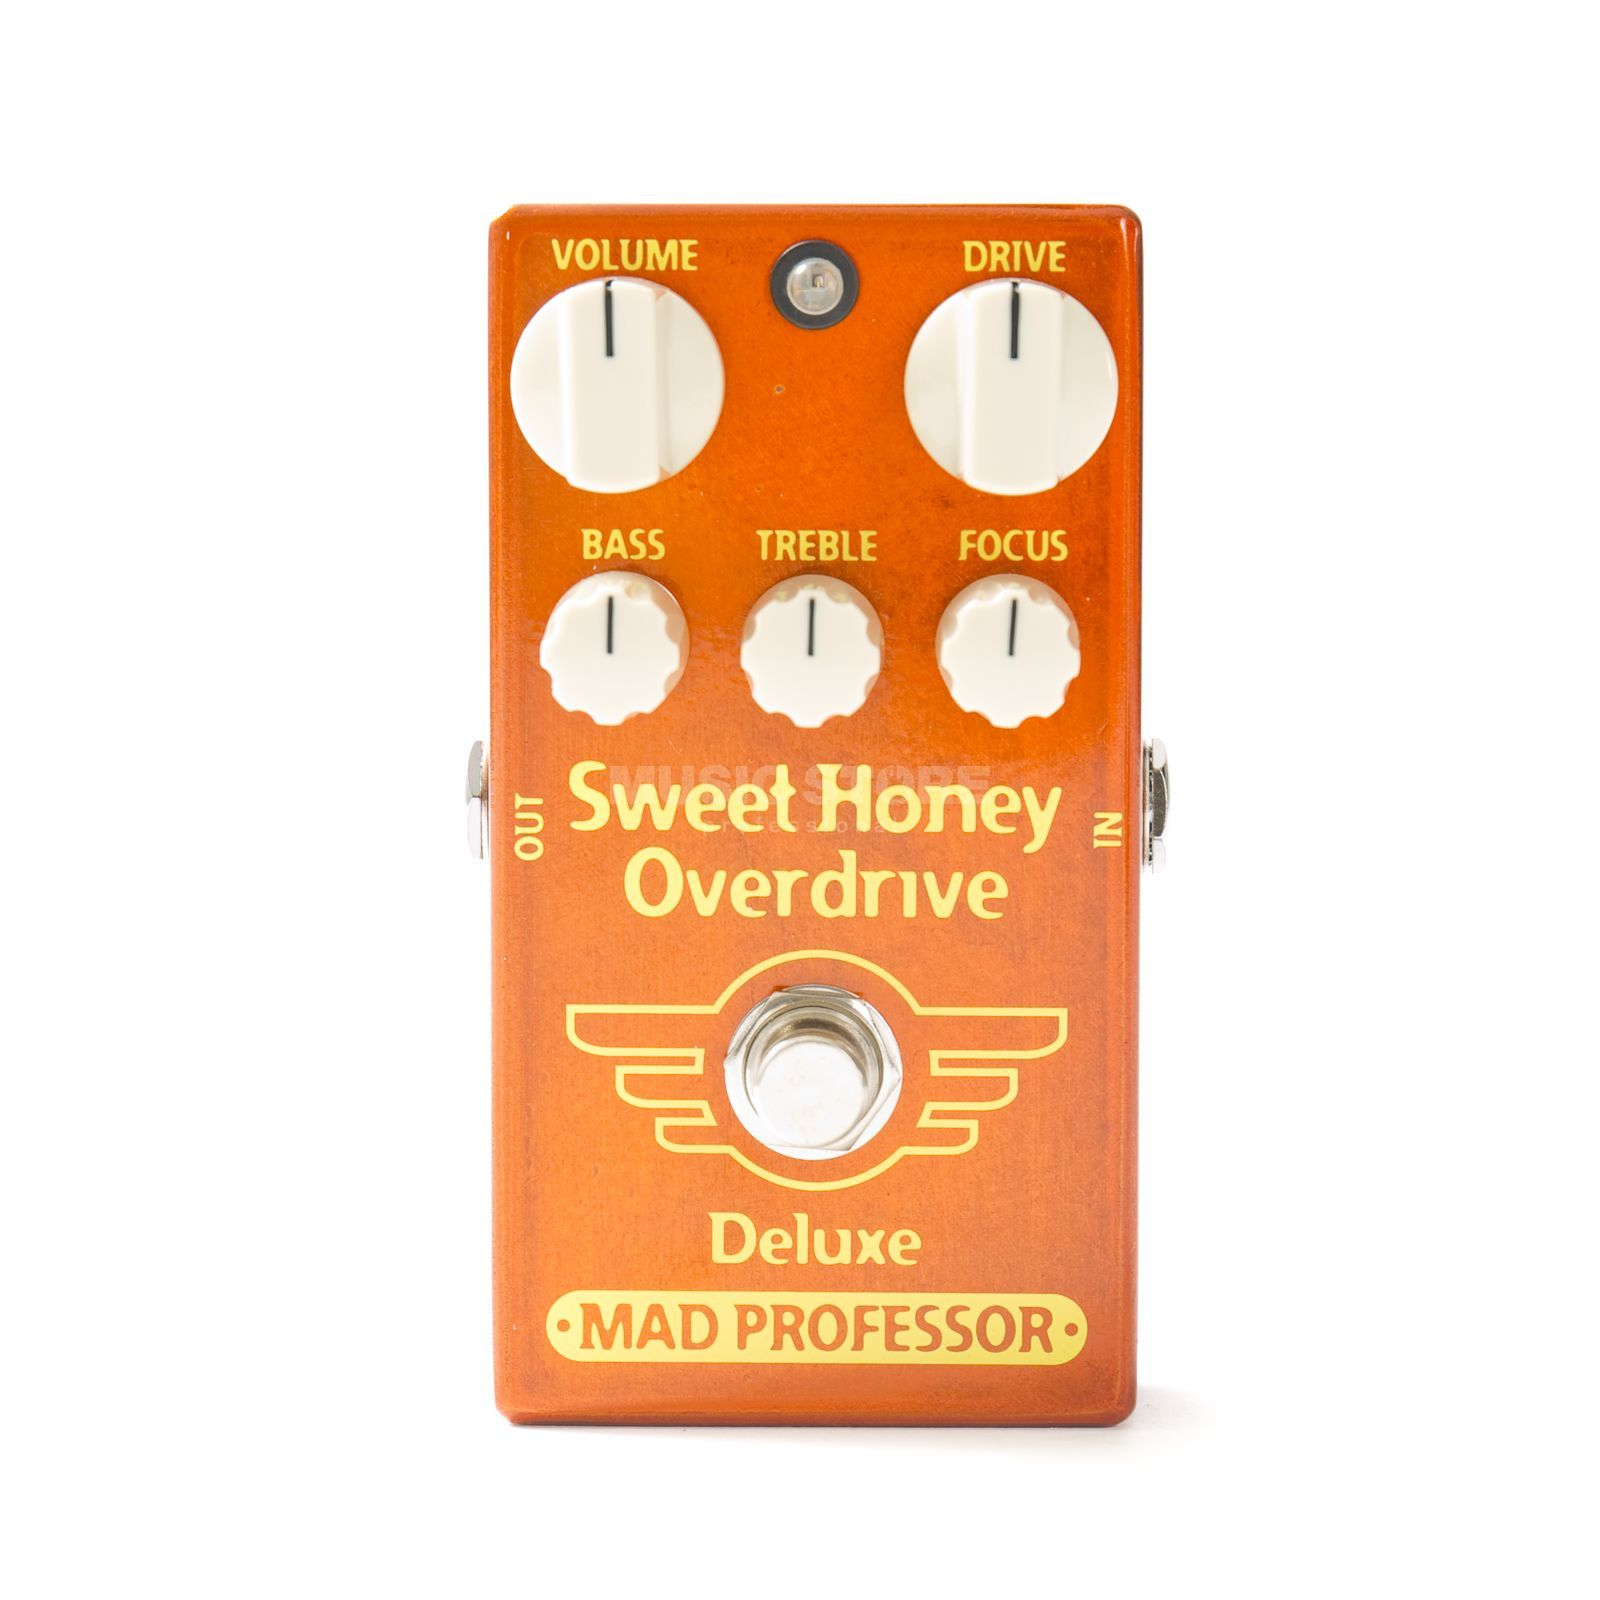 Mad Professor Sweet Honey Overdrive Deluxe Factory Made Zdjęcie produktu